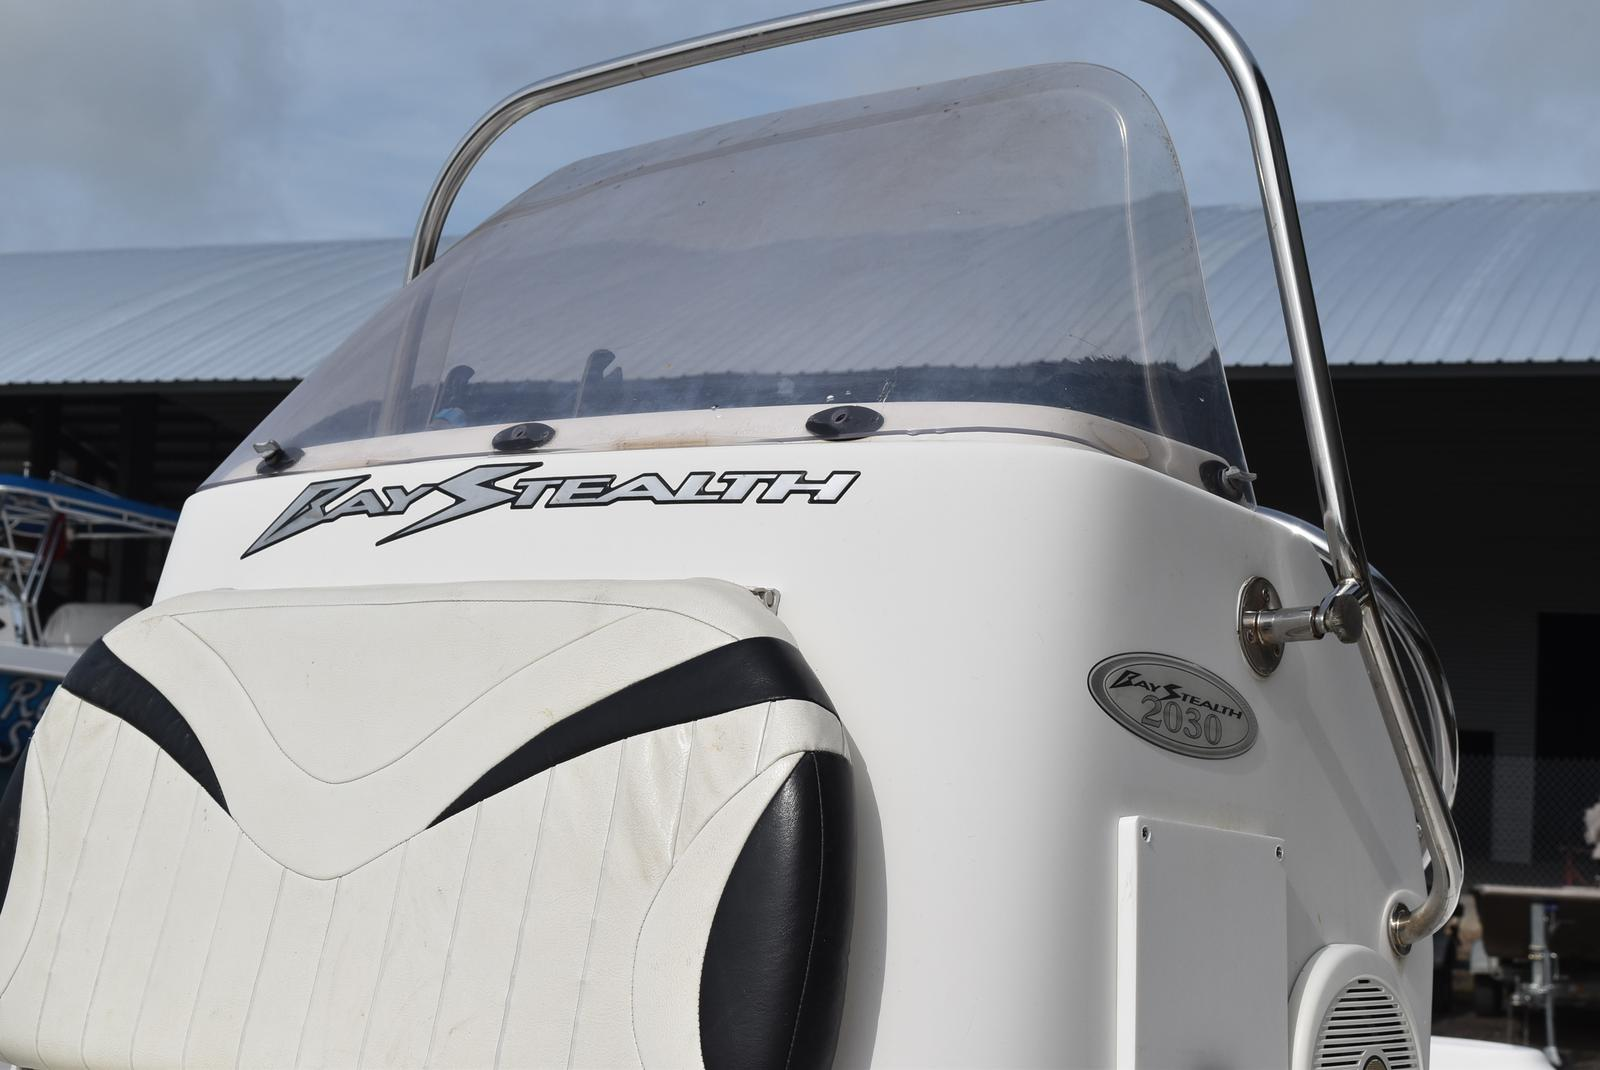 2006 Bay Stealth boat for sale, model of the boat is 2030 & Image # 6 of 12